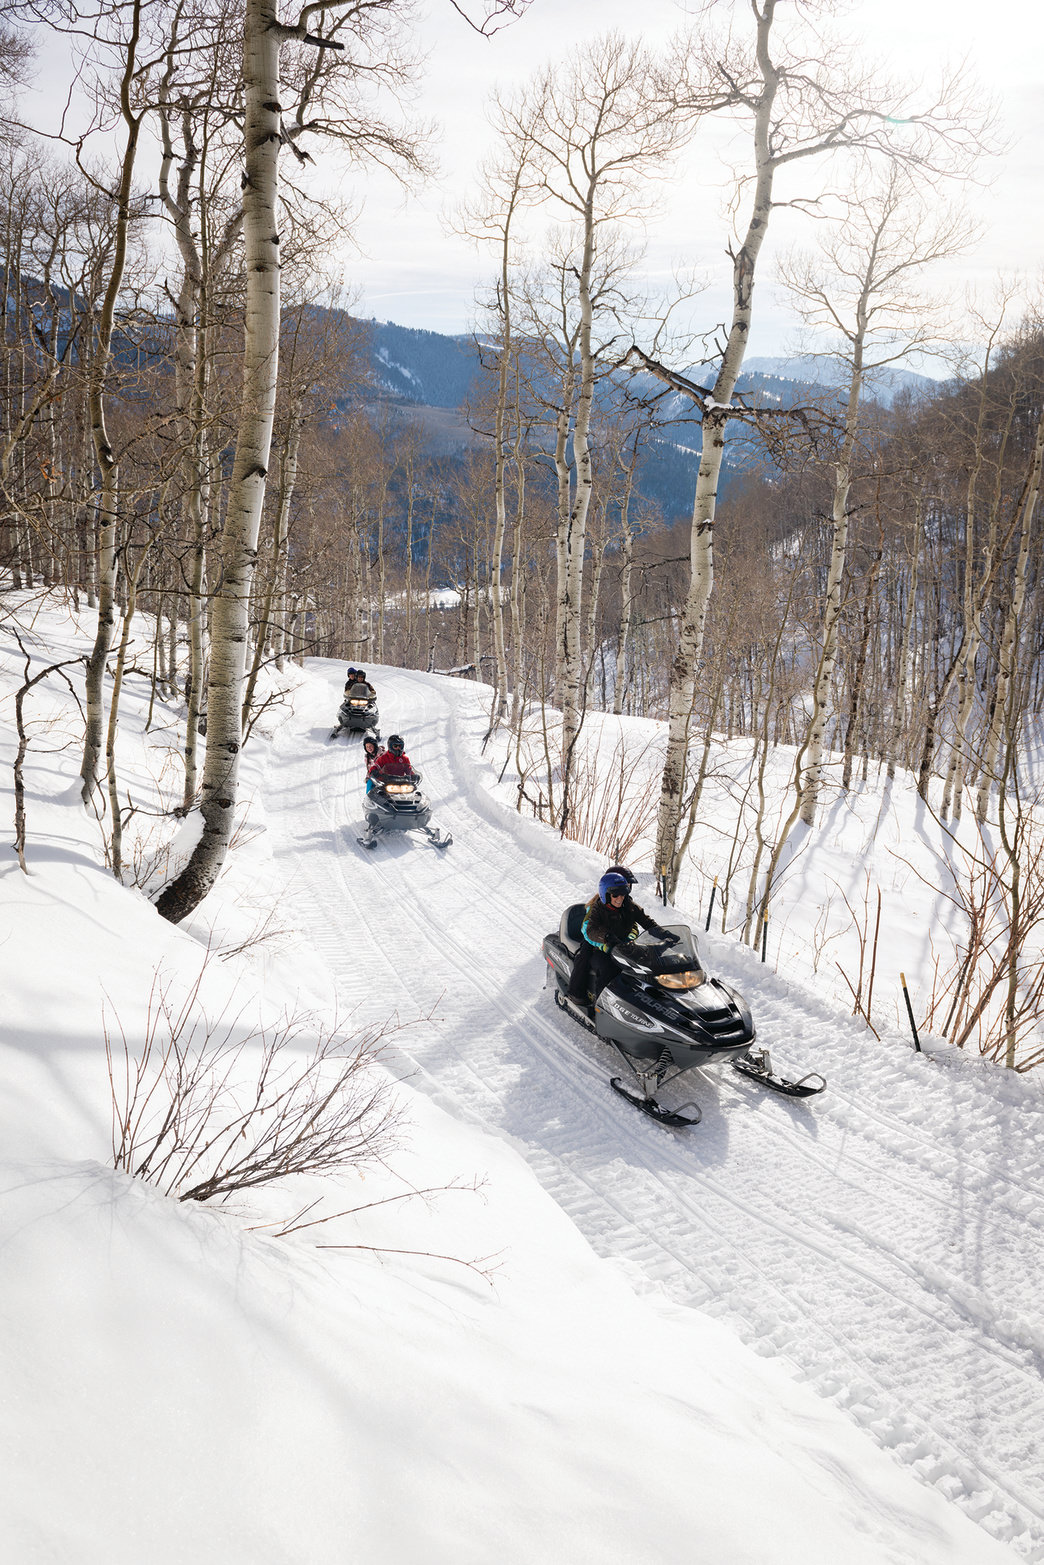 Tour the backcountry by snowmobile.